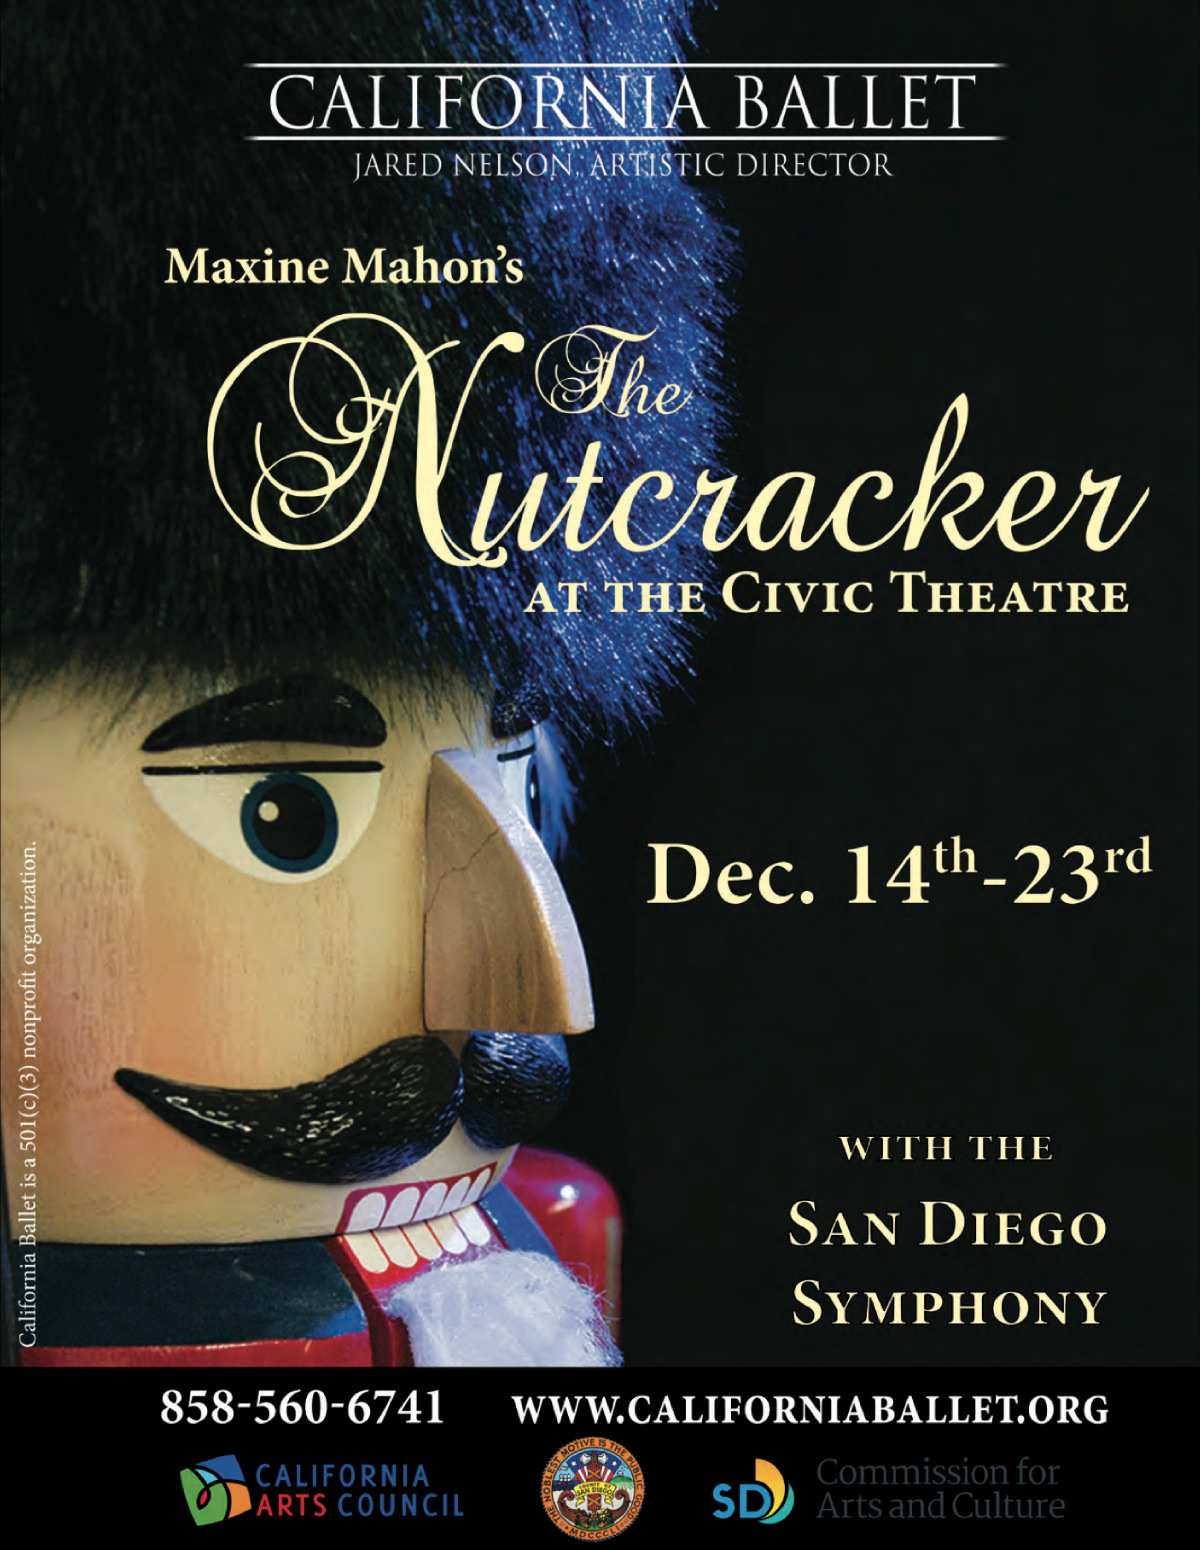 Nutcracker_California-Ballet-San-Diego-Civic-Theatre+.jpg